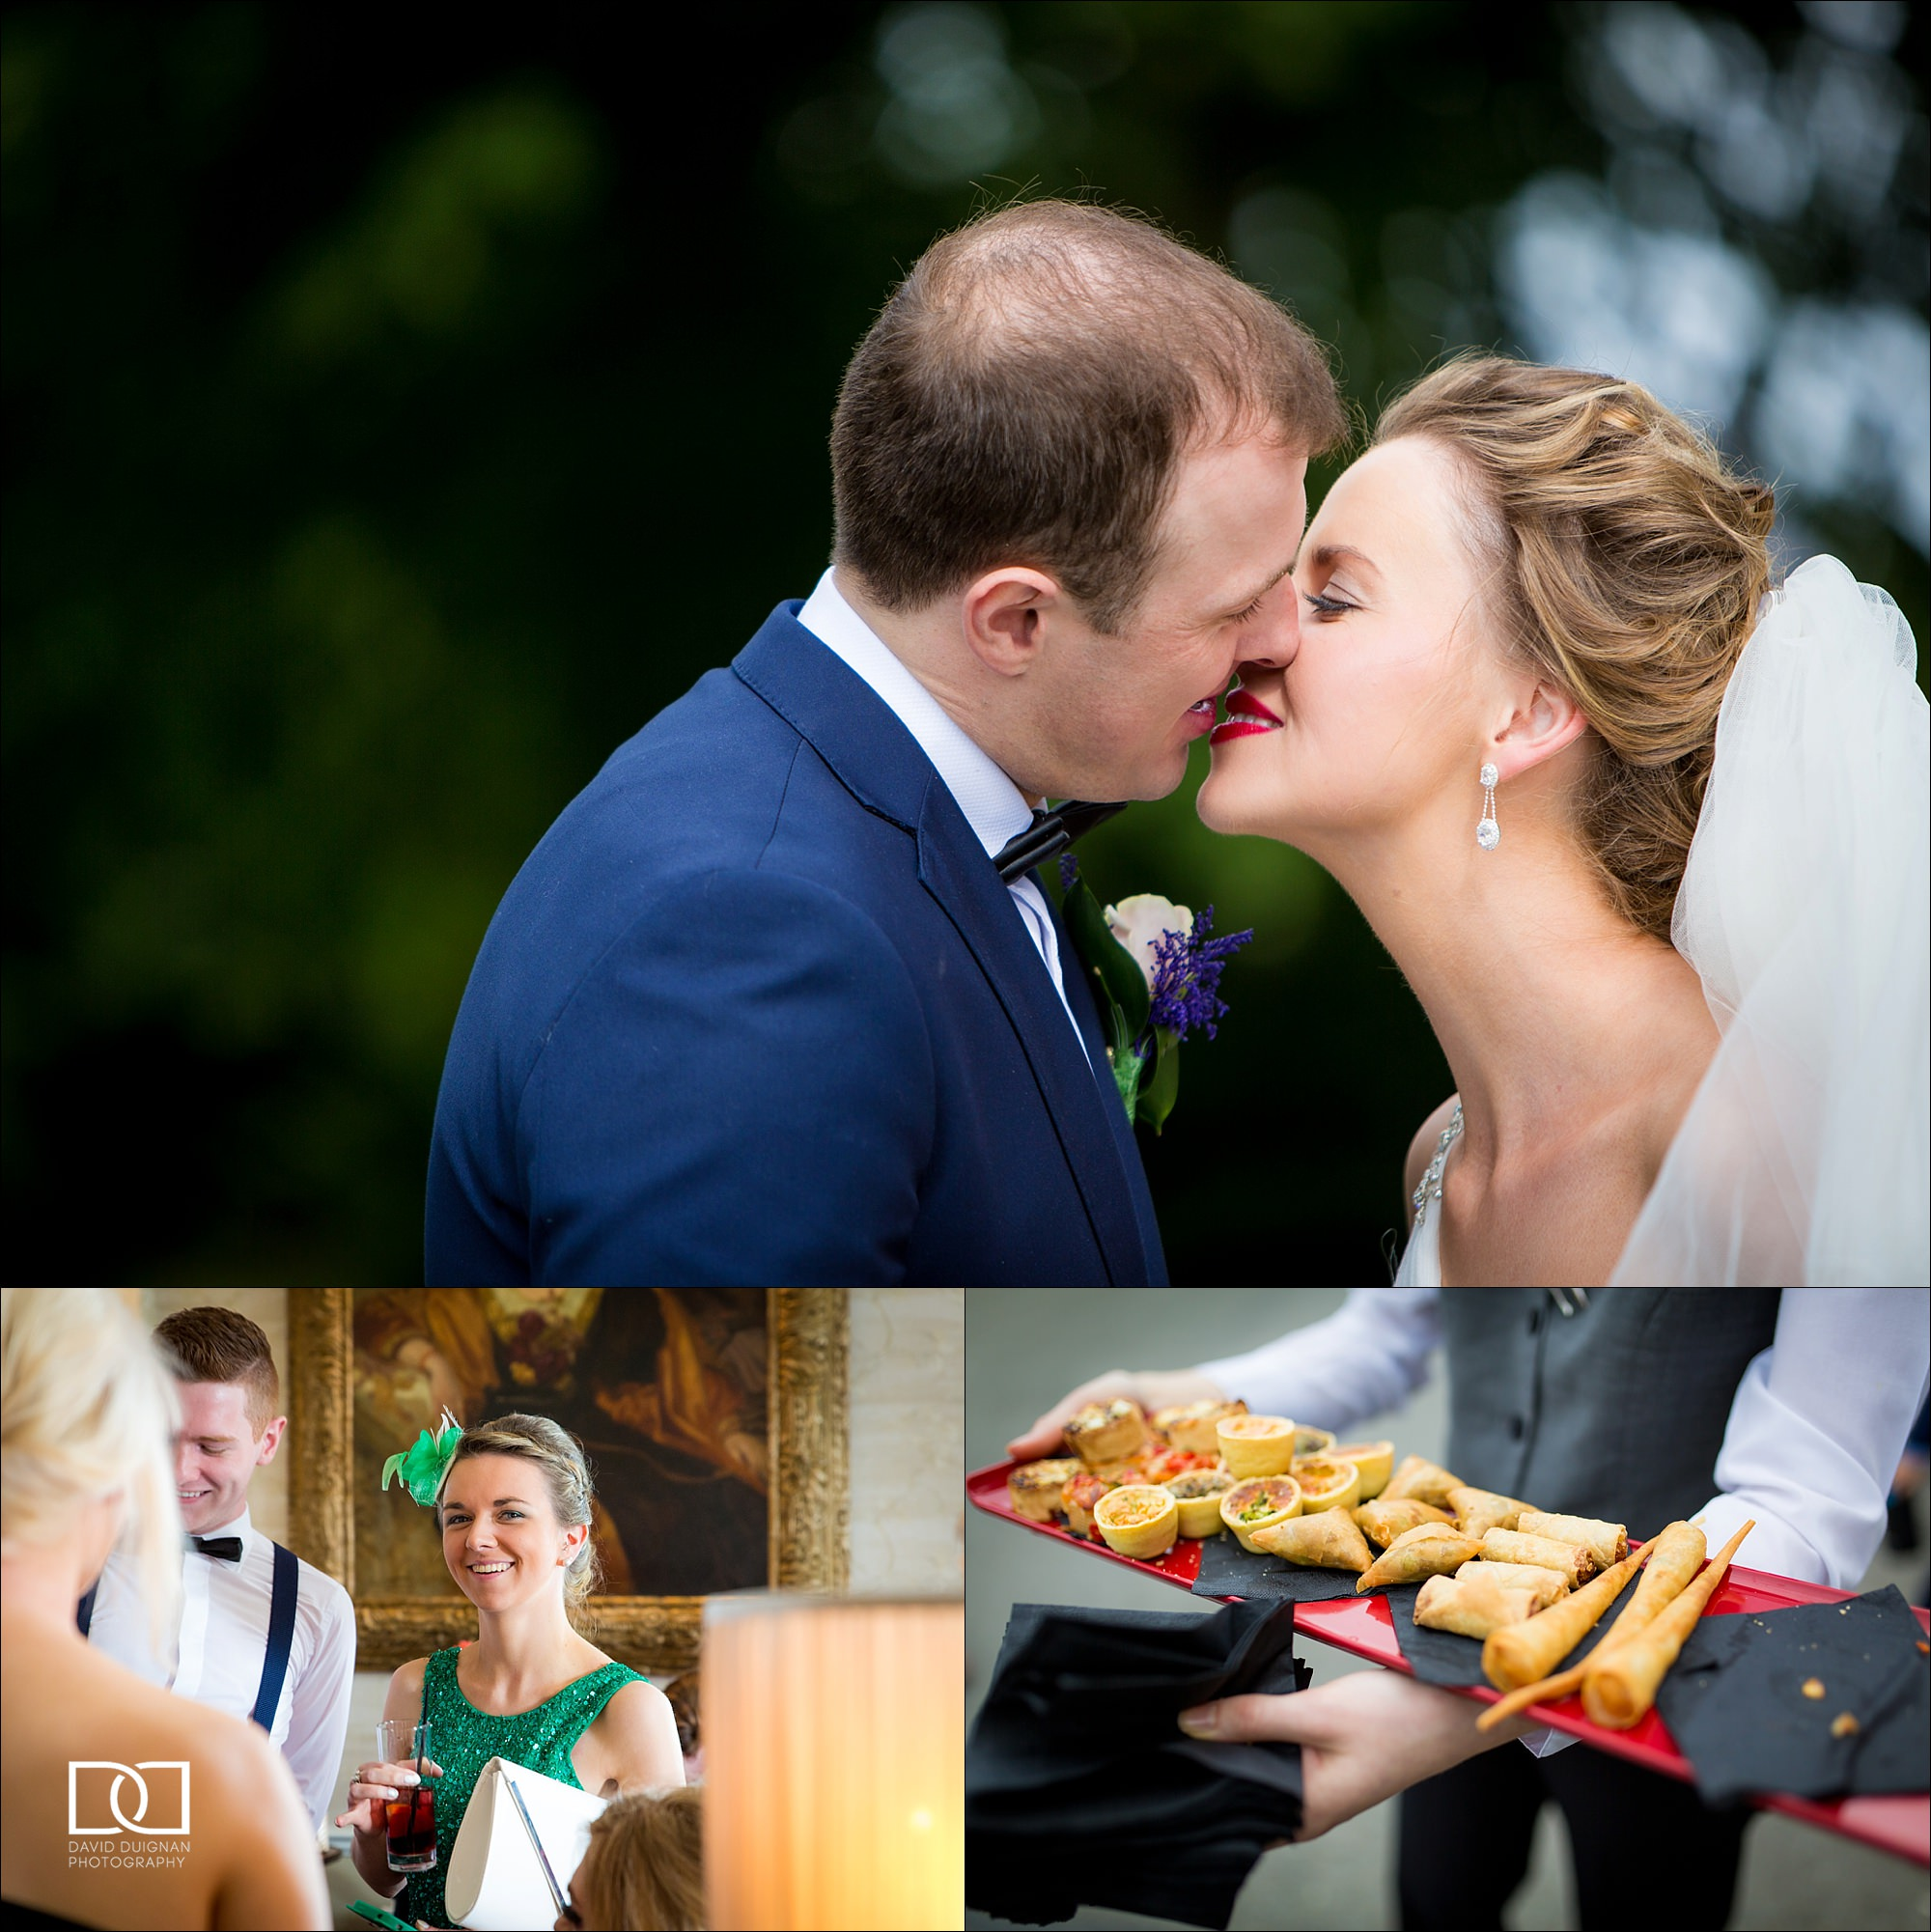 louth wedding photographer david duignan photography castle bellingham wedding Ireland 0031